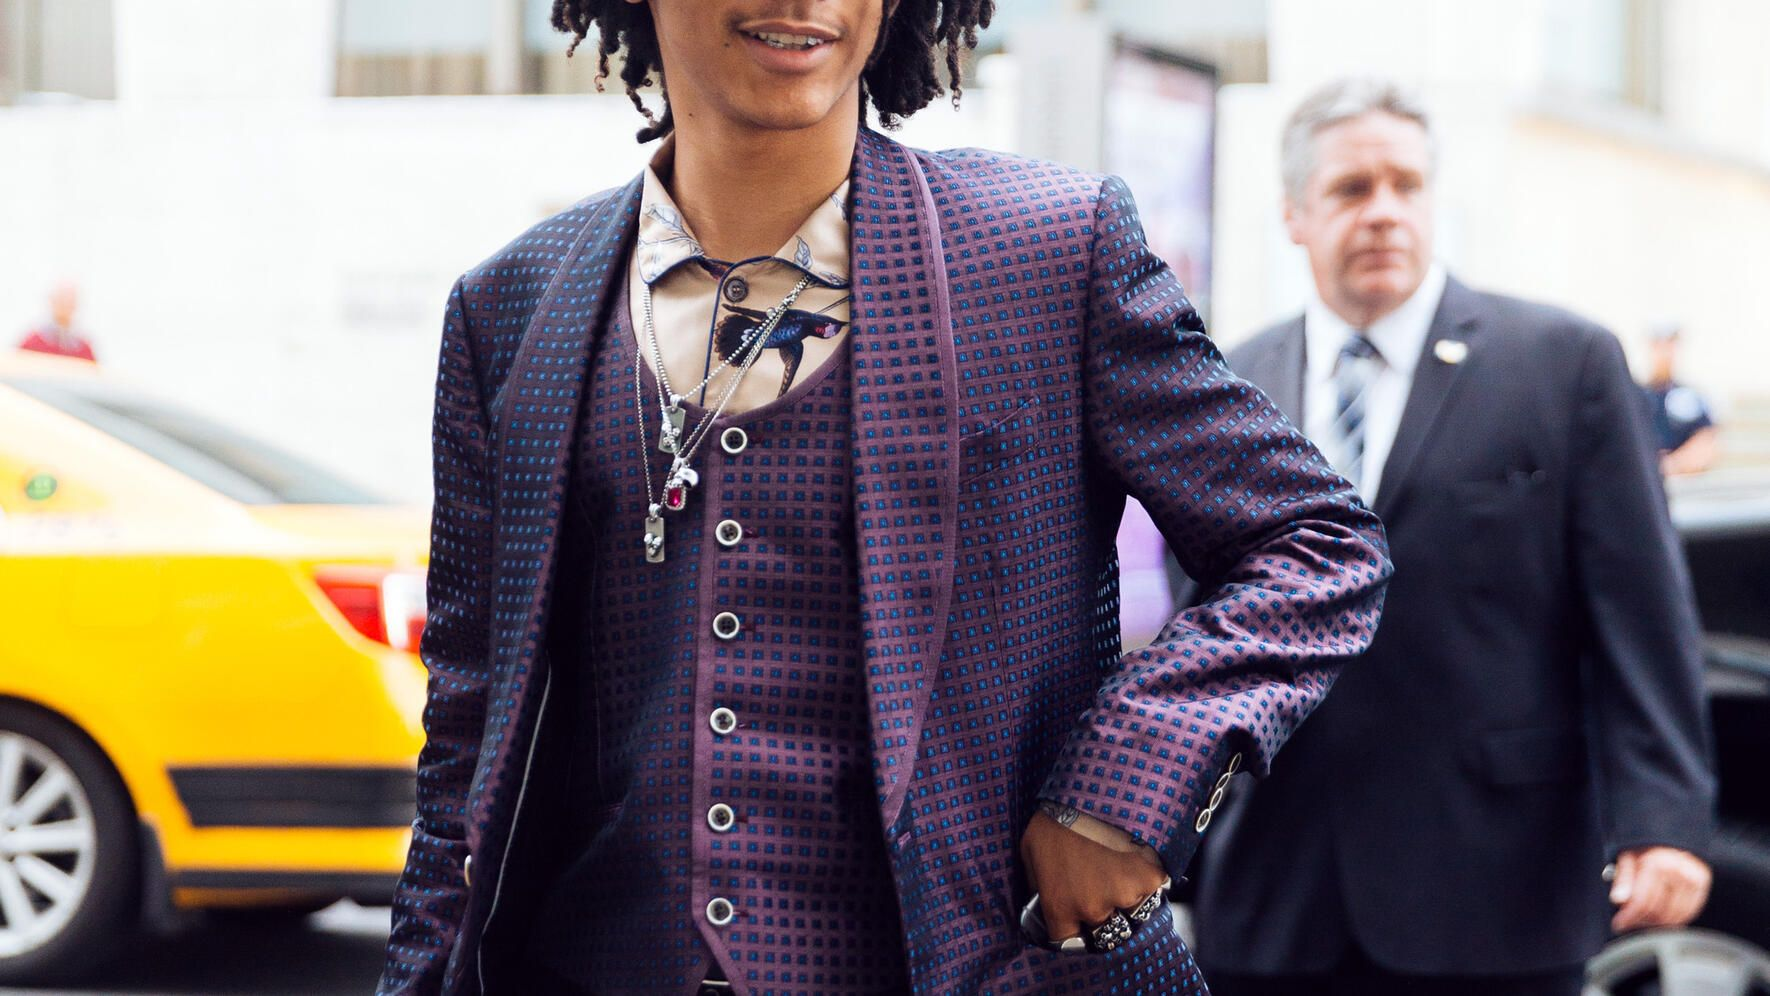 NEW YORK, NY - JUNE 07:  Model/Stylist Luka Sabbat wears a blue and purple square-print Dolce & Gabbana 3-piece suit and jewelry outside of the Fragrance Awards at Alice Tully Hall Lincoln Center on June 7, 2016 in New York City.  (Photo by Melodie Jeng/Getty Images)